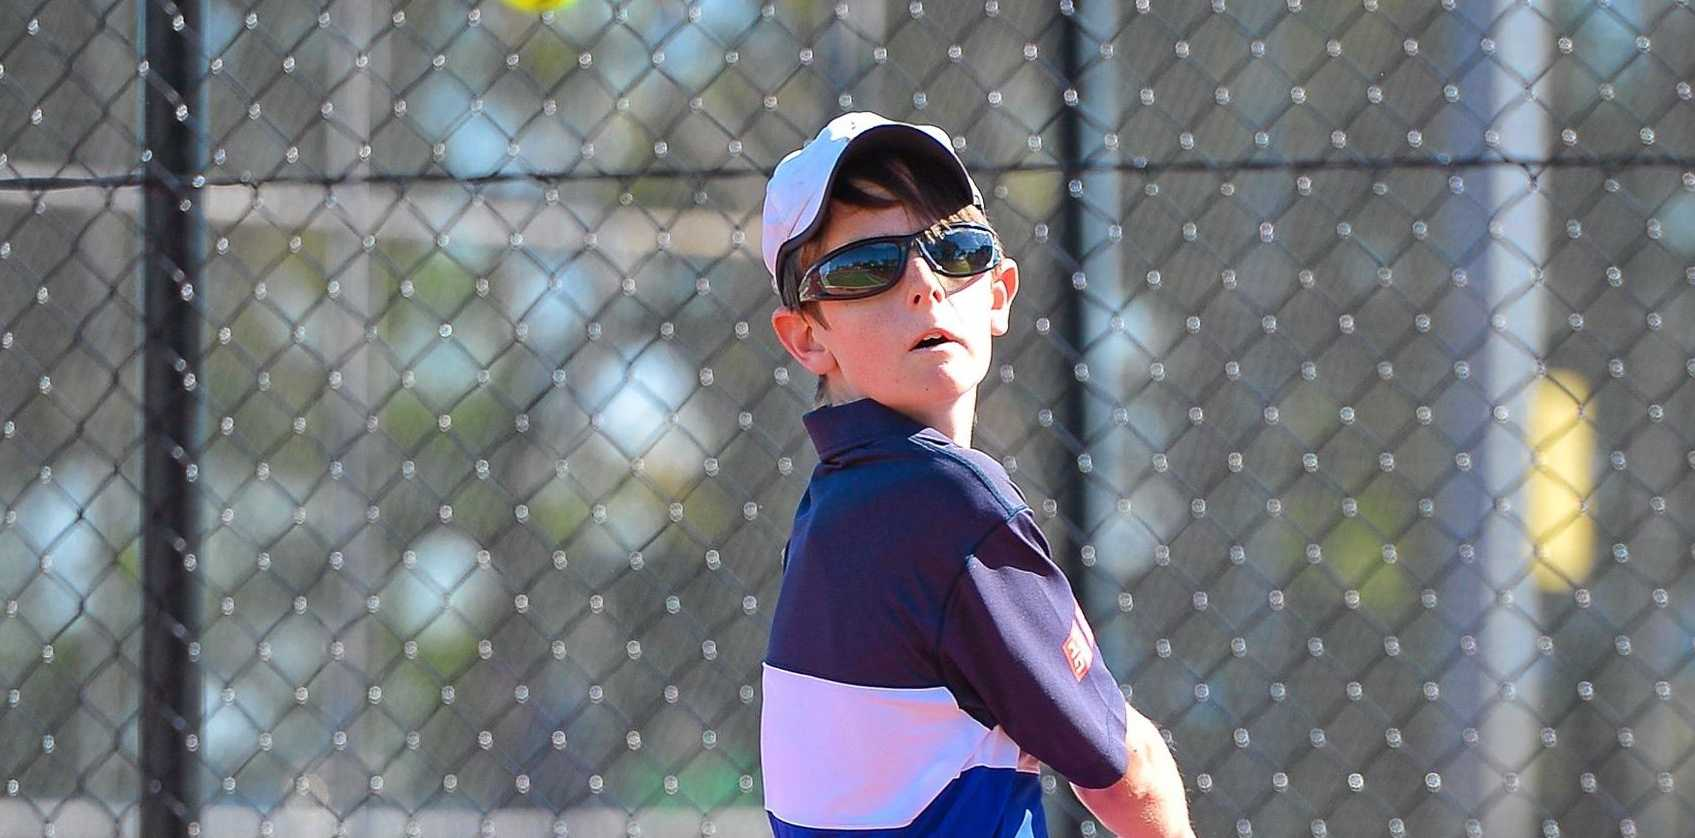 Thomas Llewllyn at the Gladstone Junior Tennis Open August14, 2016.